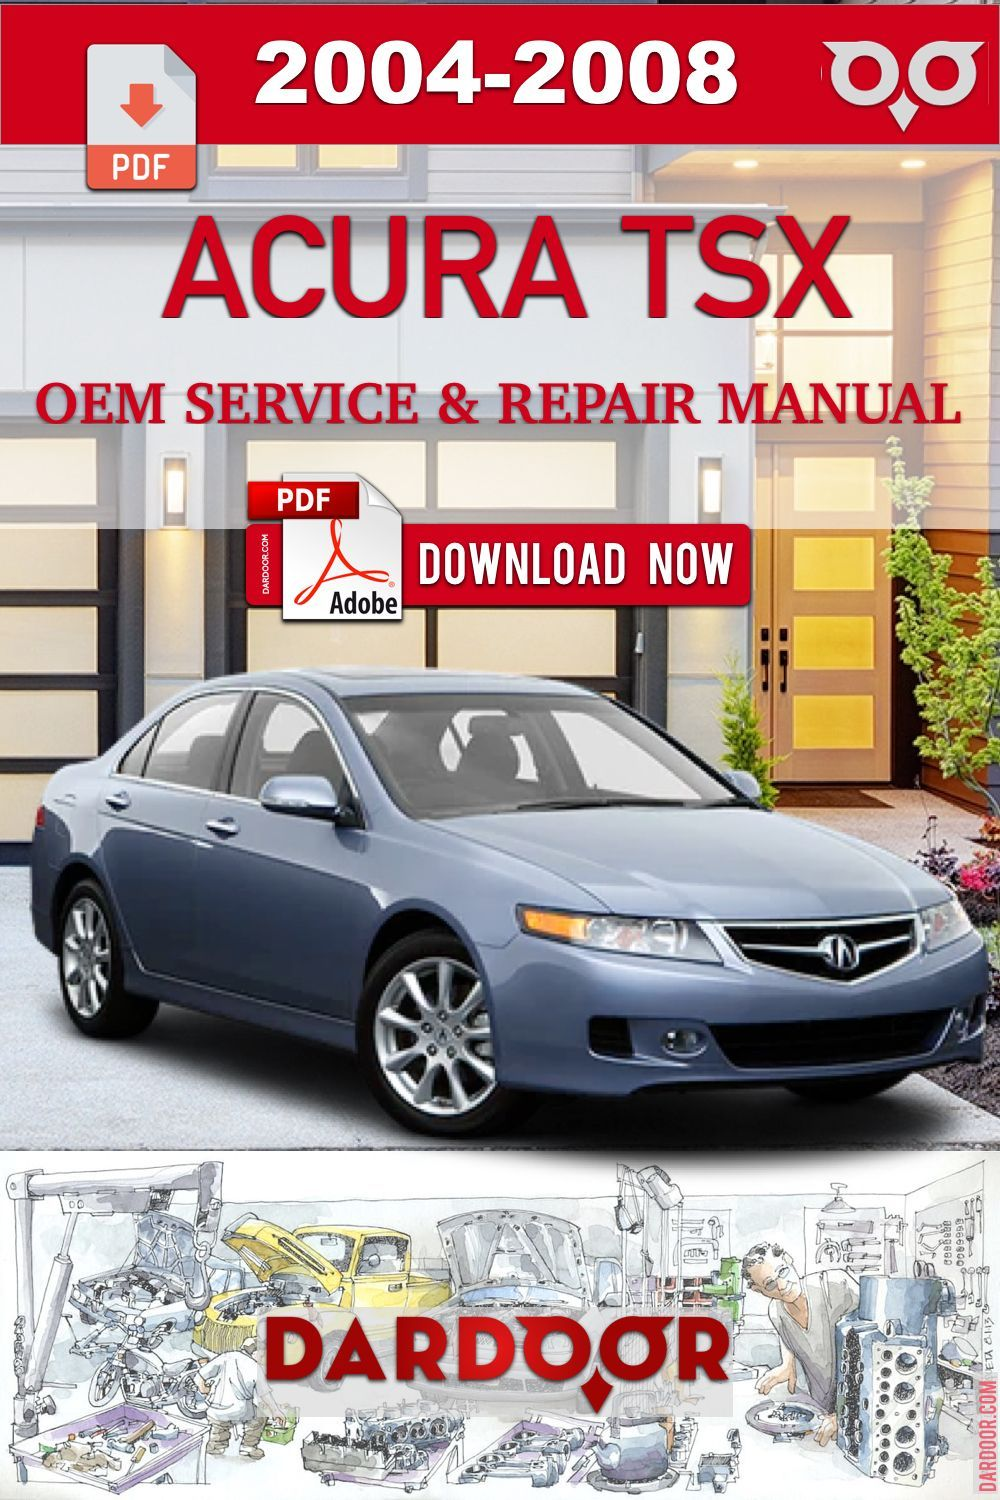 2004 2008 Acura Tsx Cl9 Oem Service And Repair Manual Acura Carrepairmanuals Cl9 Manual Oem Repair Service Tsx In 2020 Repair Manuals Acura Tsx Acura